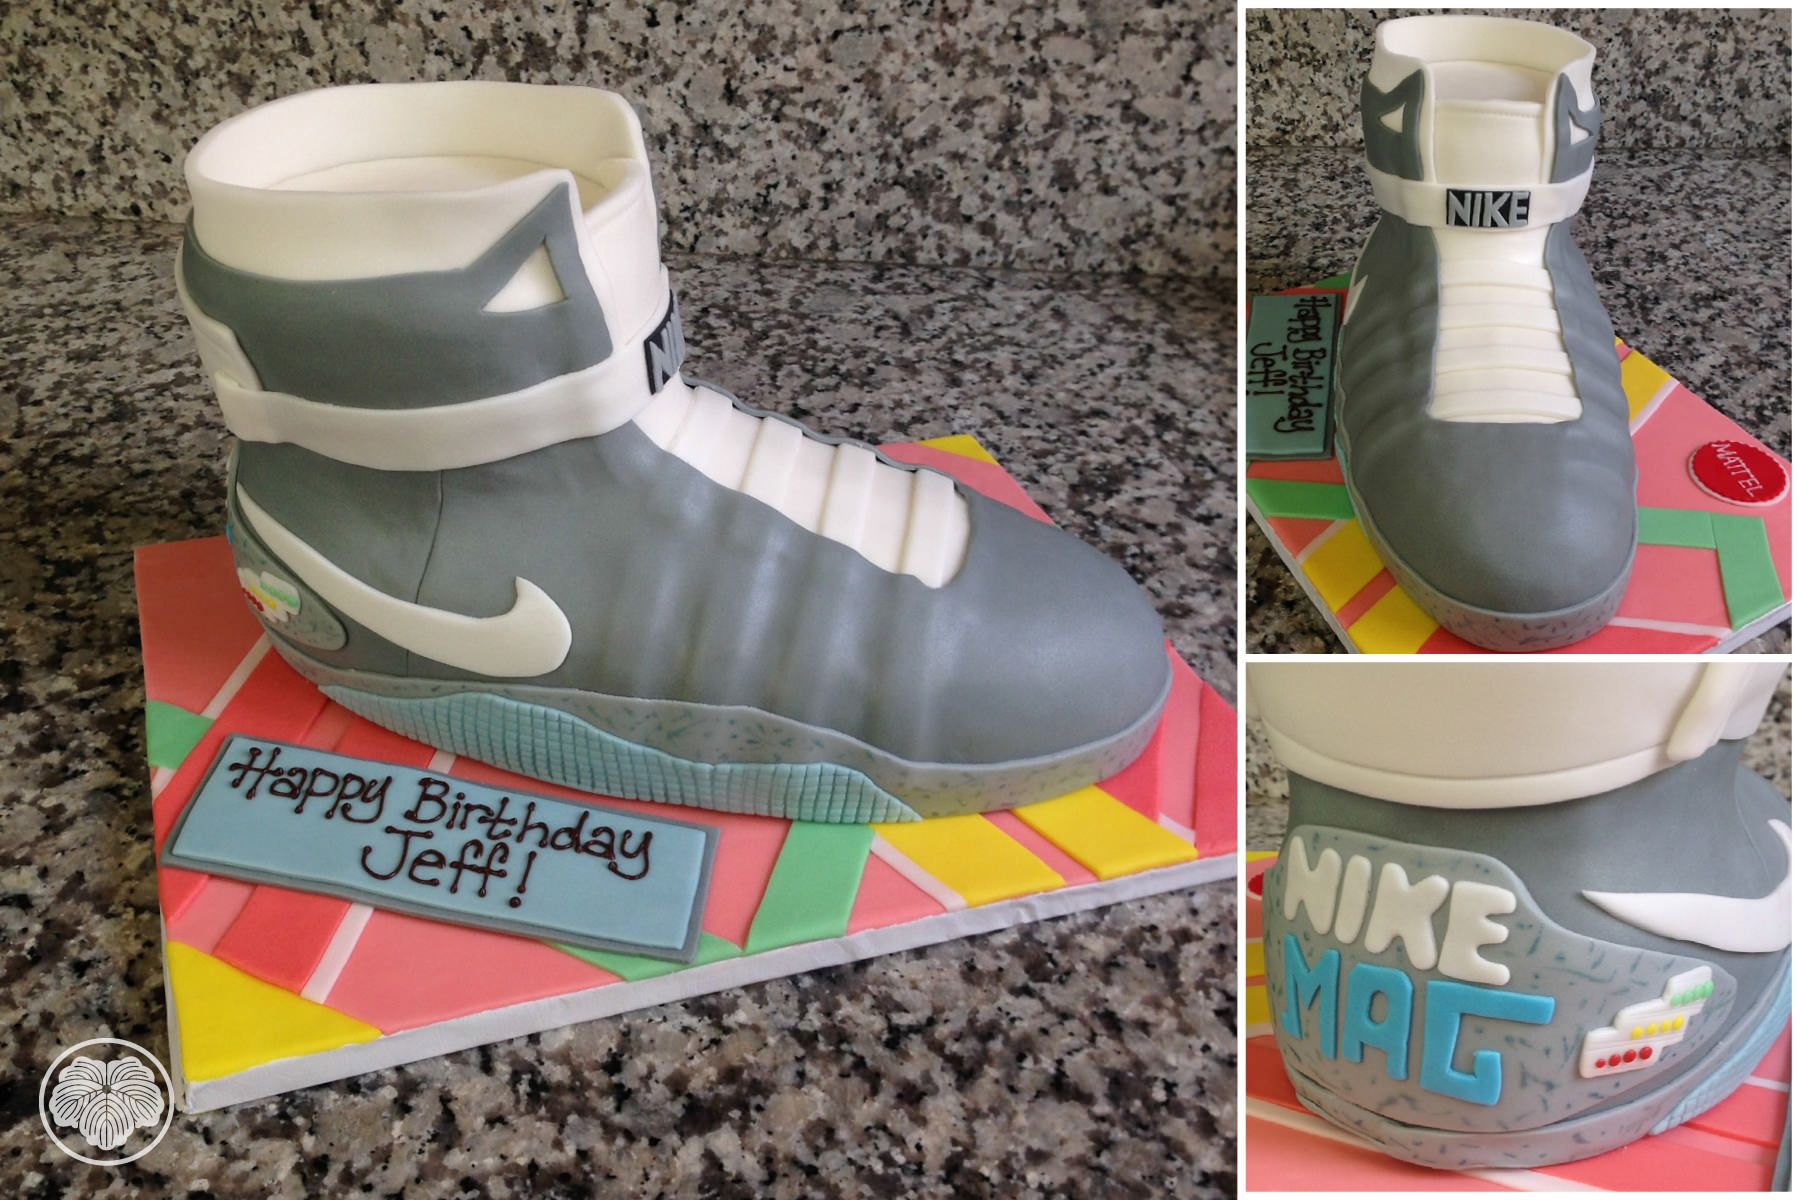 Nike Air Mag Shoe Cake From Back To The Future Ii The Board Is